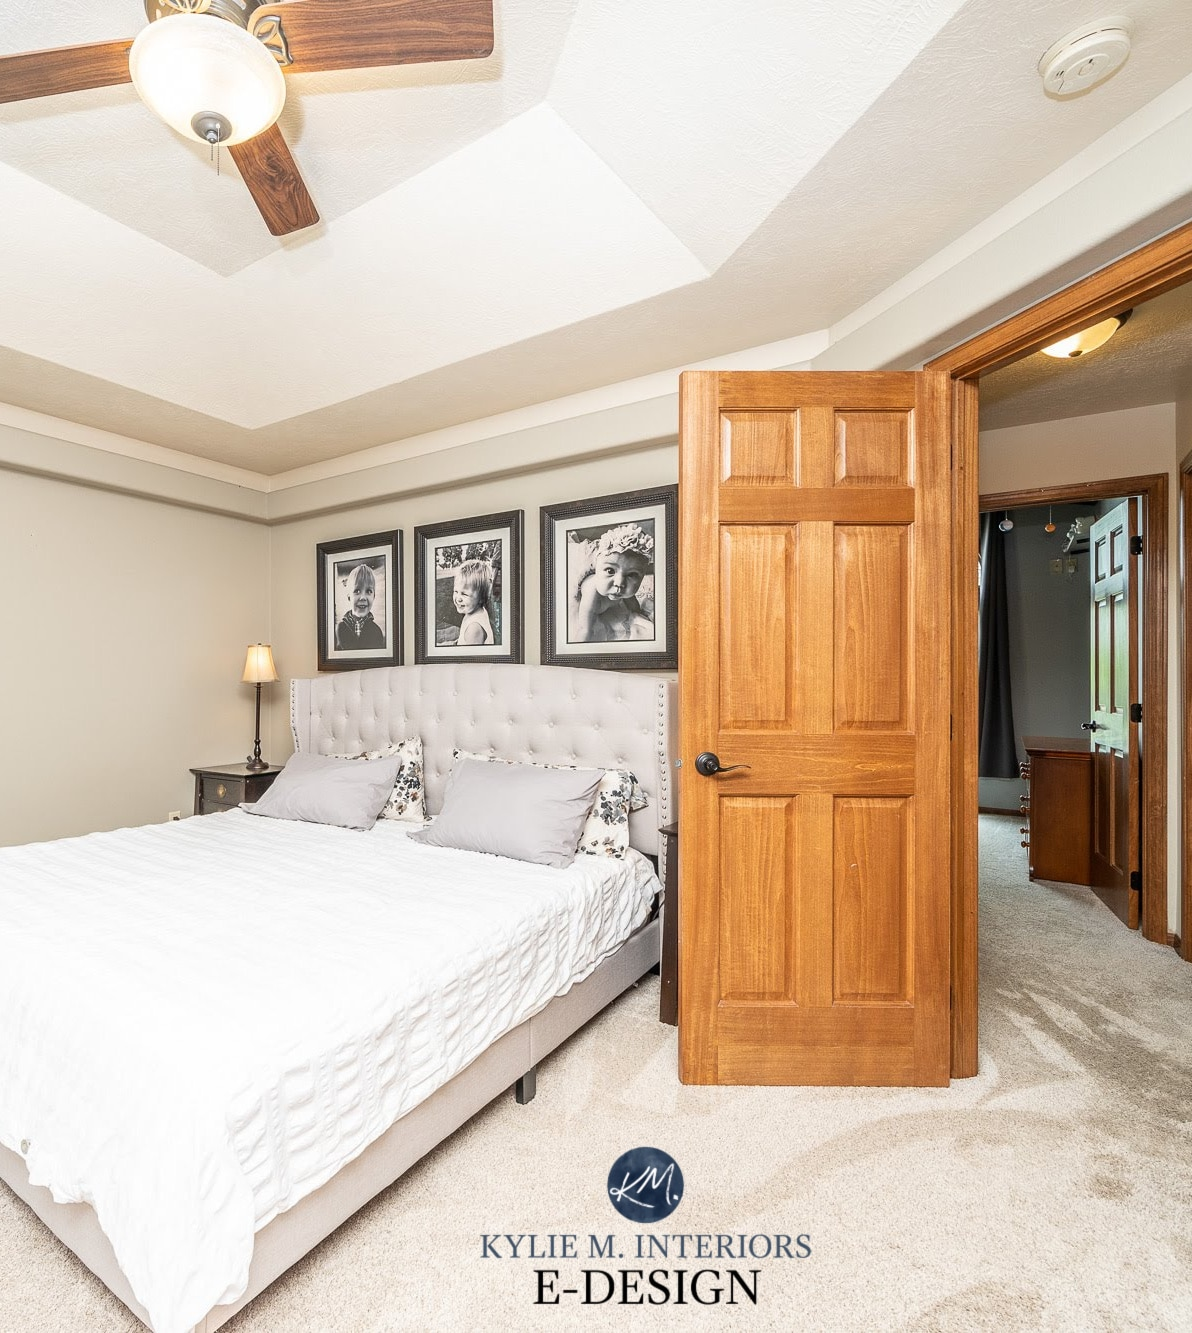 Sherwin Williams Canvas Tan Home Staging Ideas Bedroom Dark Wood Trim Beige Carpet Kylie M Interiors Edesign Online Paint Color Advice